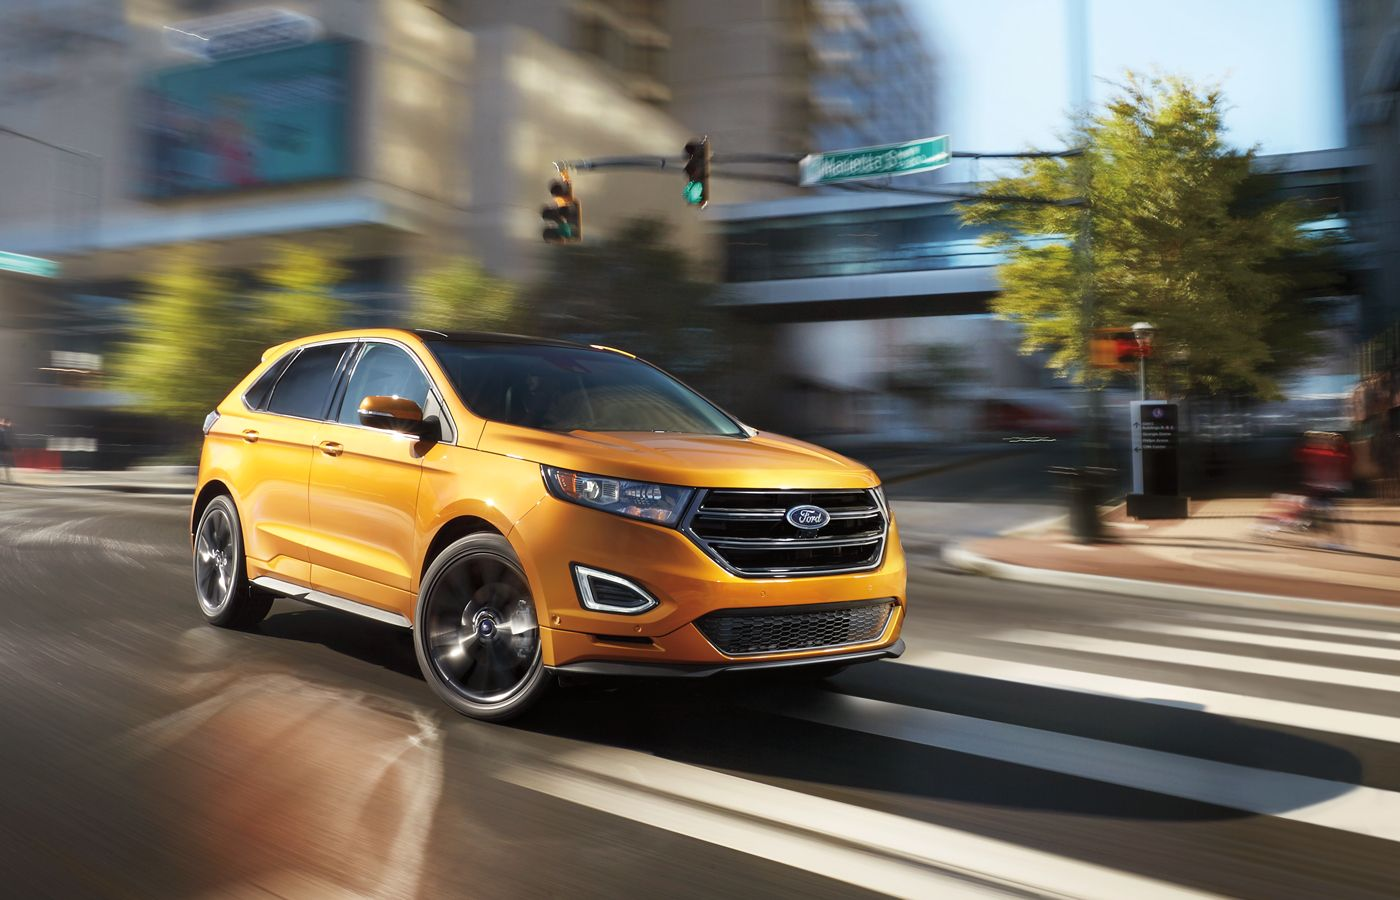 Check Out The Bold New Design Of The  Edge Build Price Your Ford Edge To Fit Your Needs